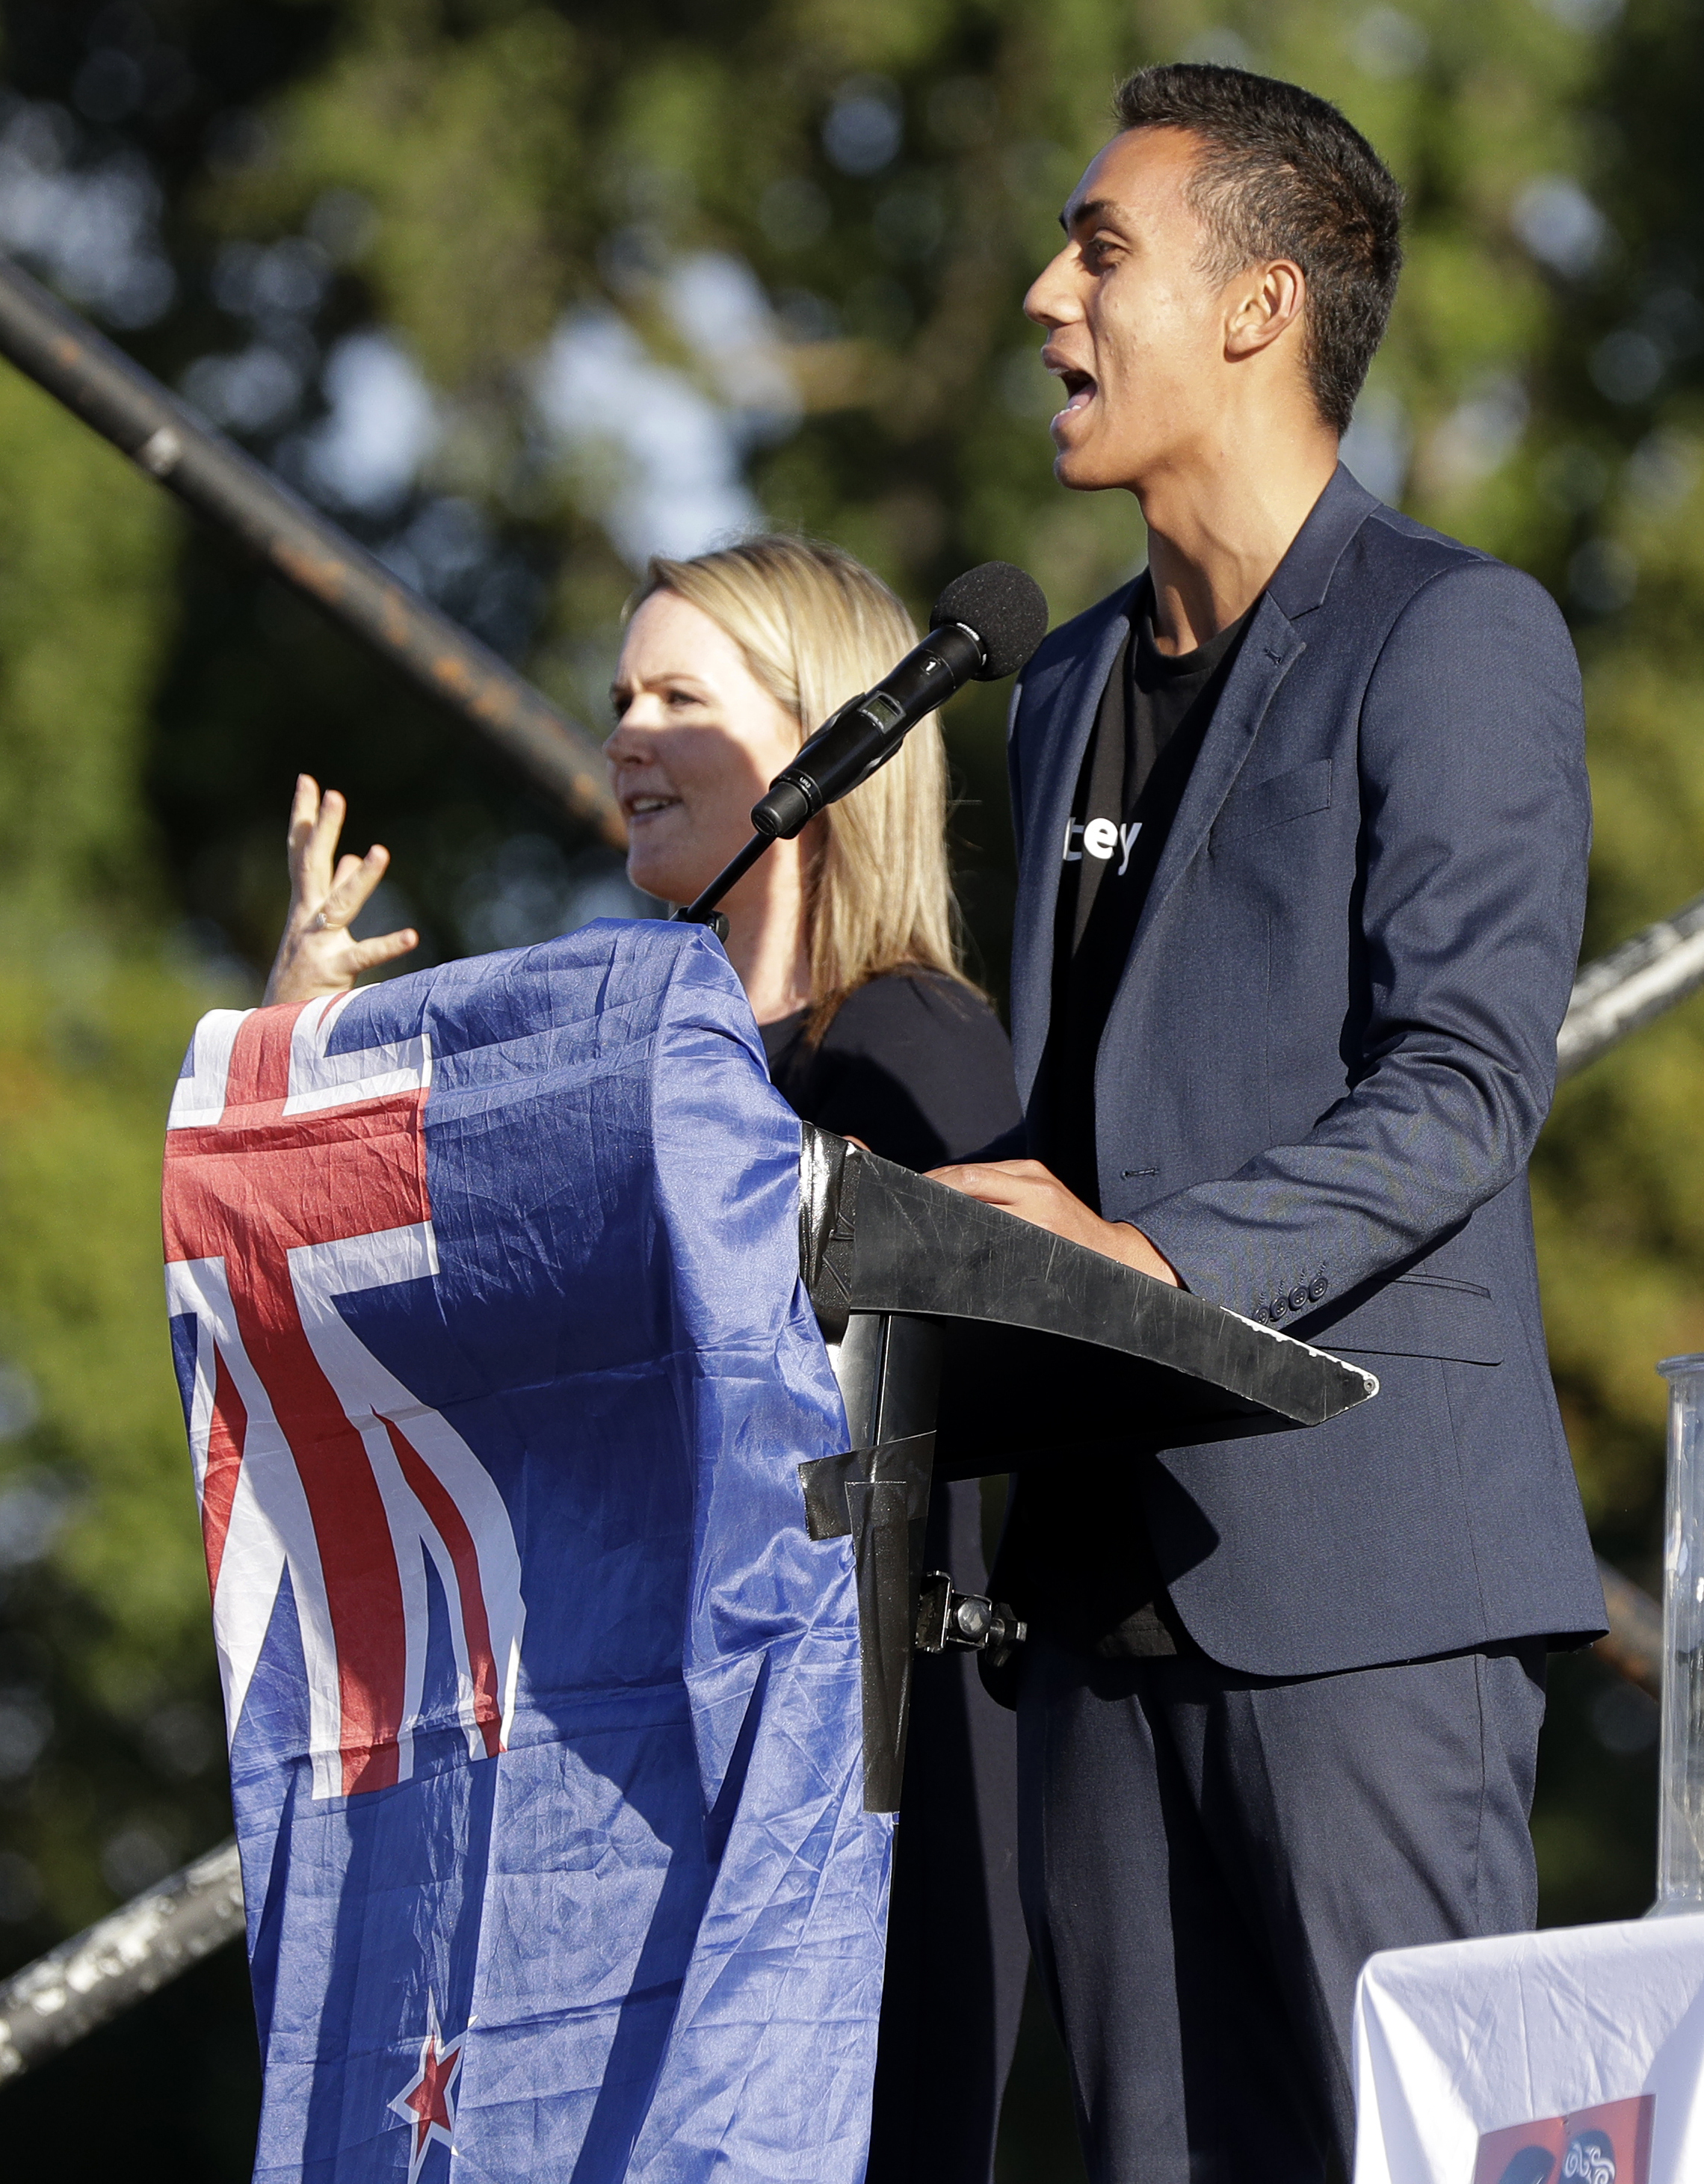 Cashmere High School head boy Okirano Tilaia addresses a vigil in Hagley Park following the March 15 mass shooting in Christchurch, New Zealand, March 24, 2019.